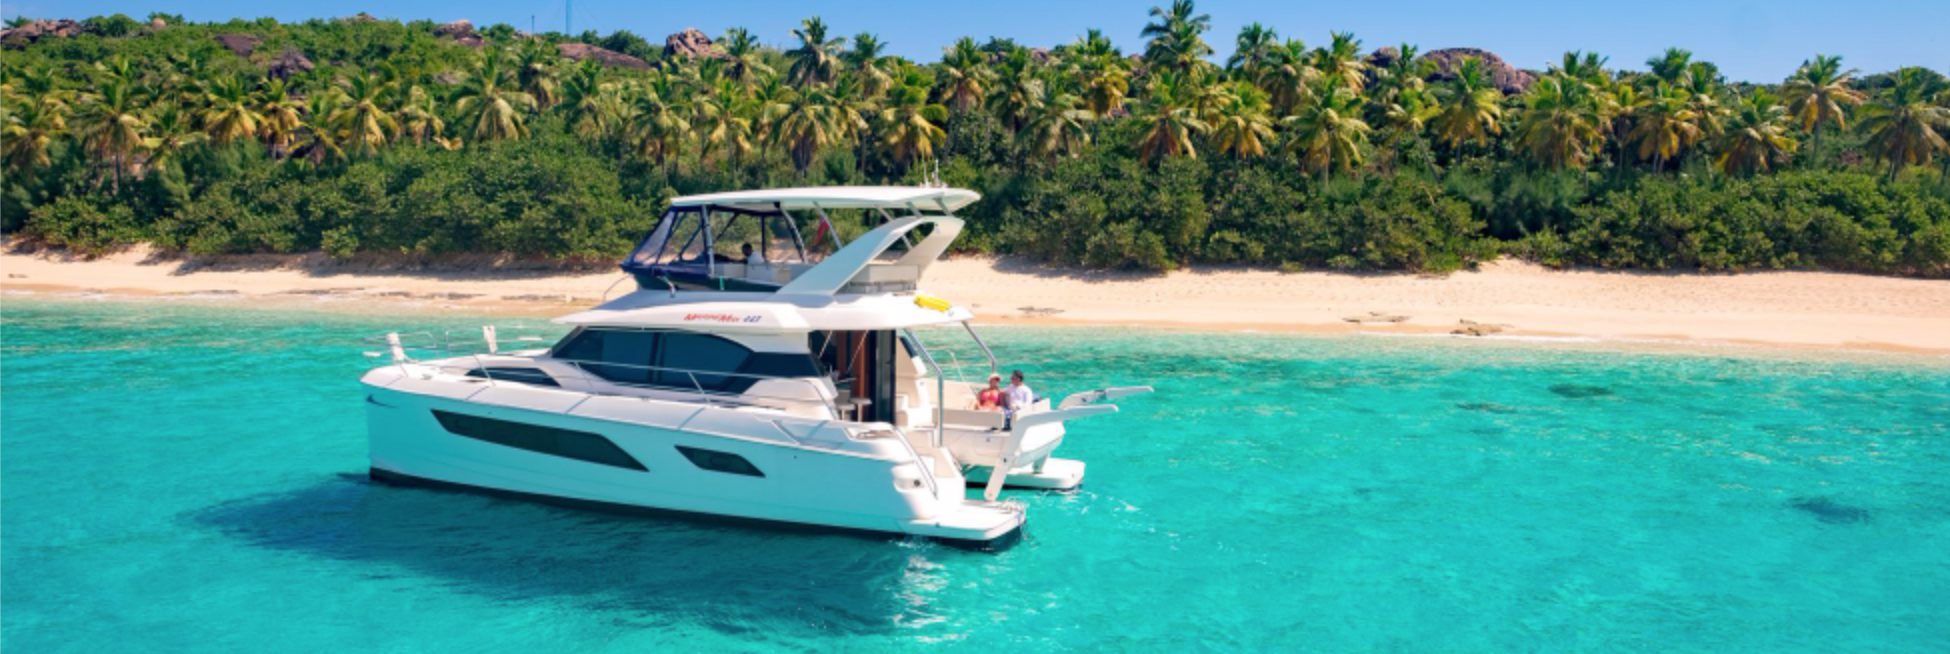 MarineMax Specials